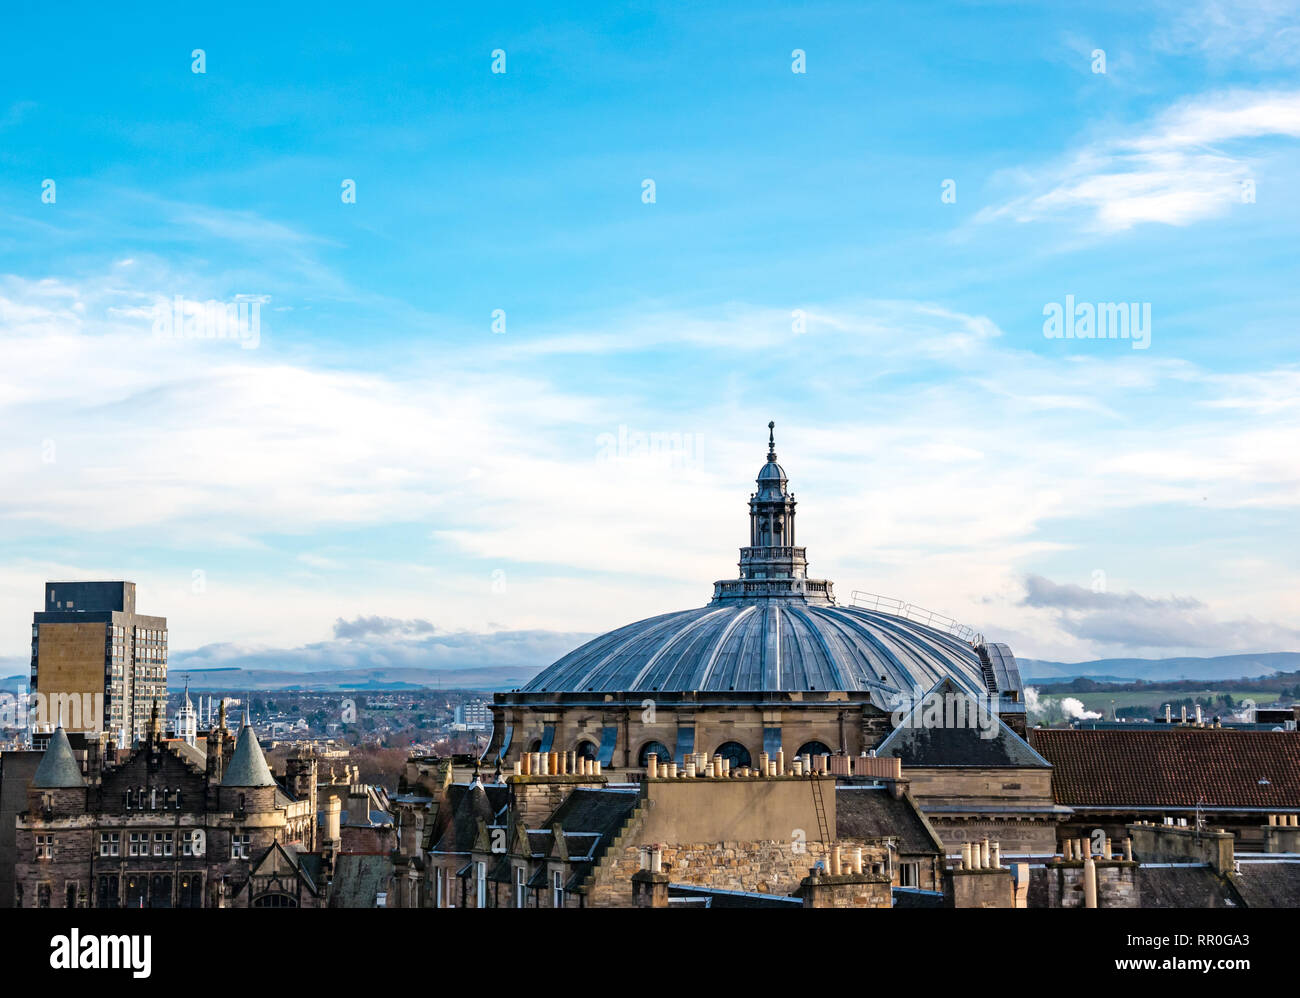 View over rooftops and chimneys, McEwan Hall dome roof, Edinburgh city centre, Scotland, UK - Stock Image